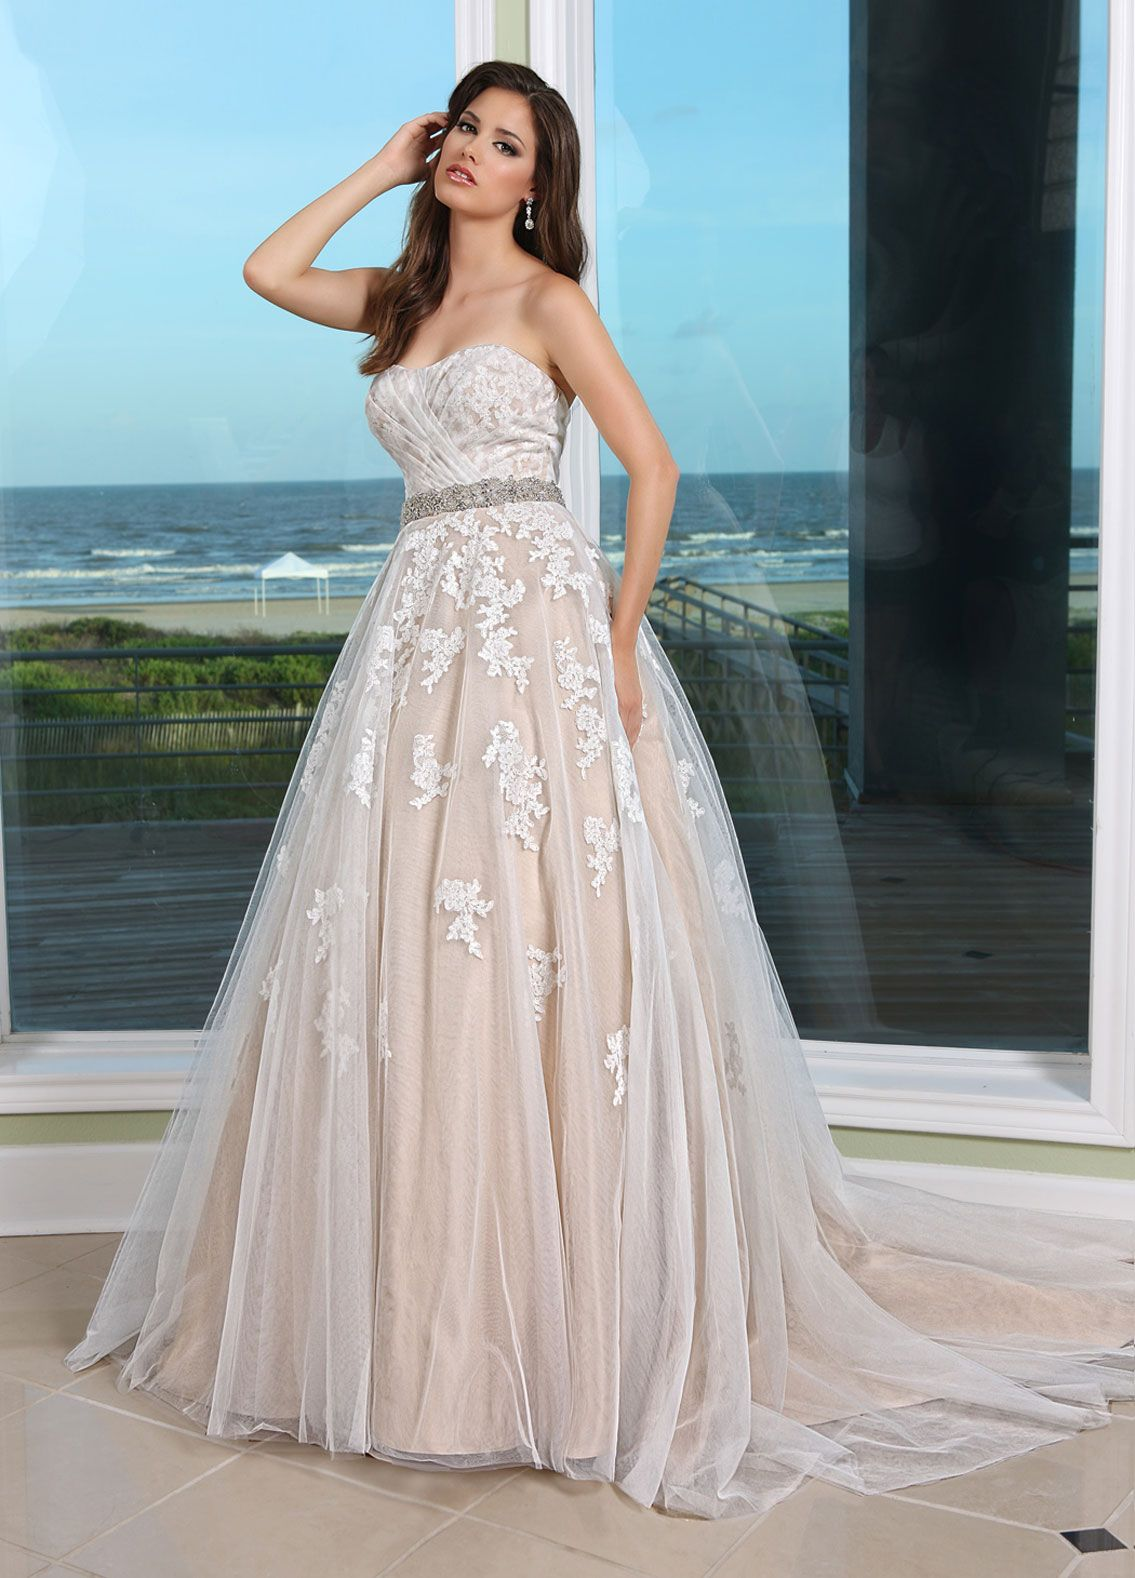 champaign wedding dress Tulle with Lace overlay gown with elegant rhinestone trim at waist Available in Ivory Champagne